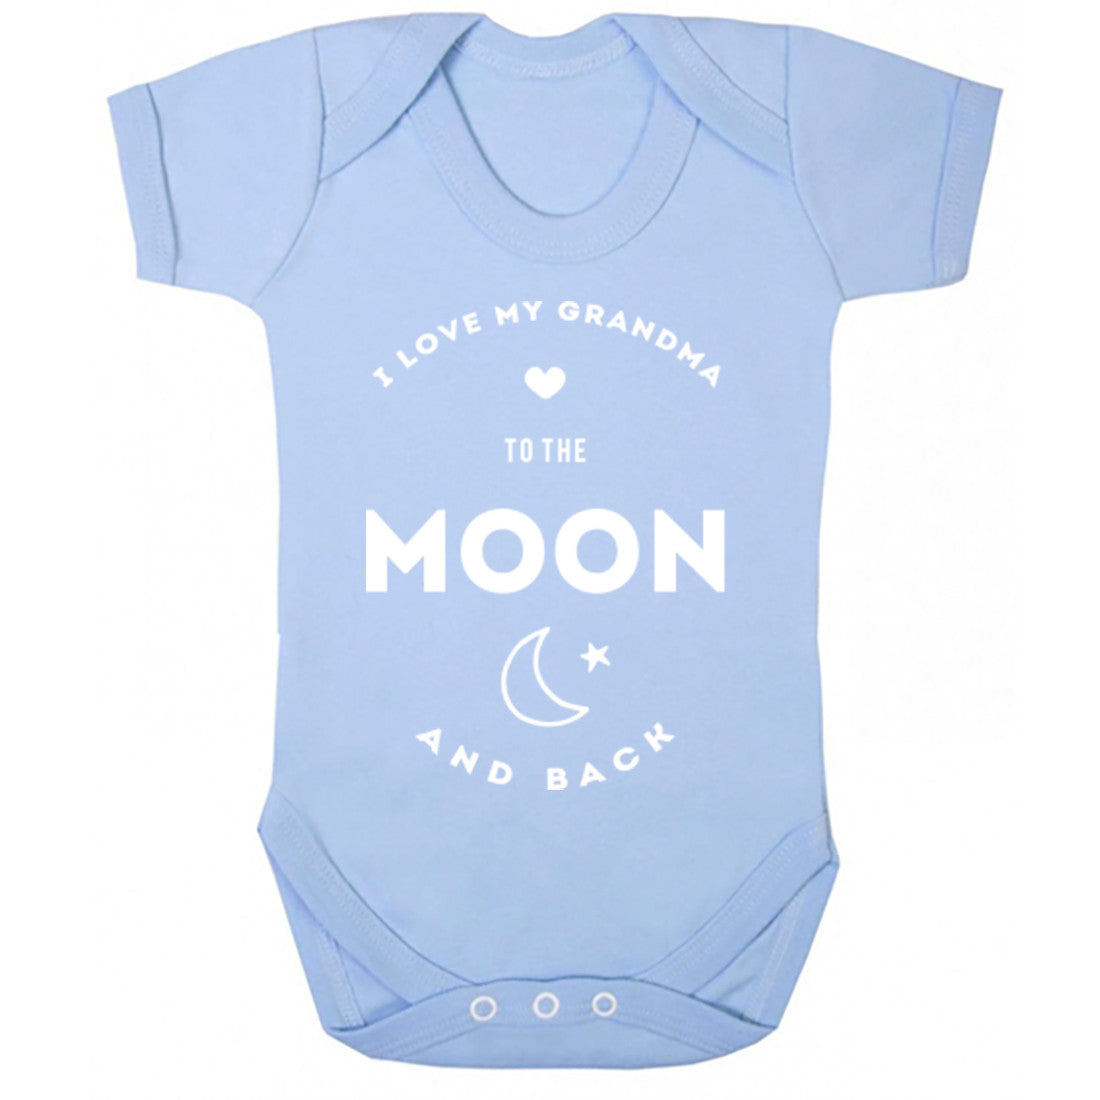 I Love My Grandma To The Moon And Back Baby Vest K0399 - Illustrated Identity Ltd.